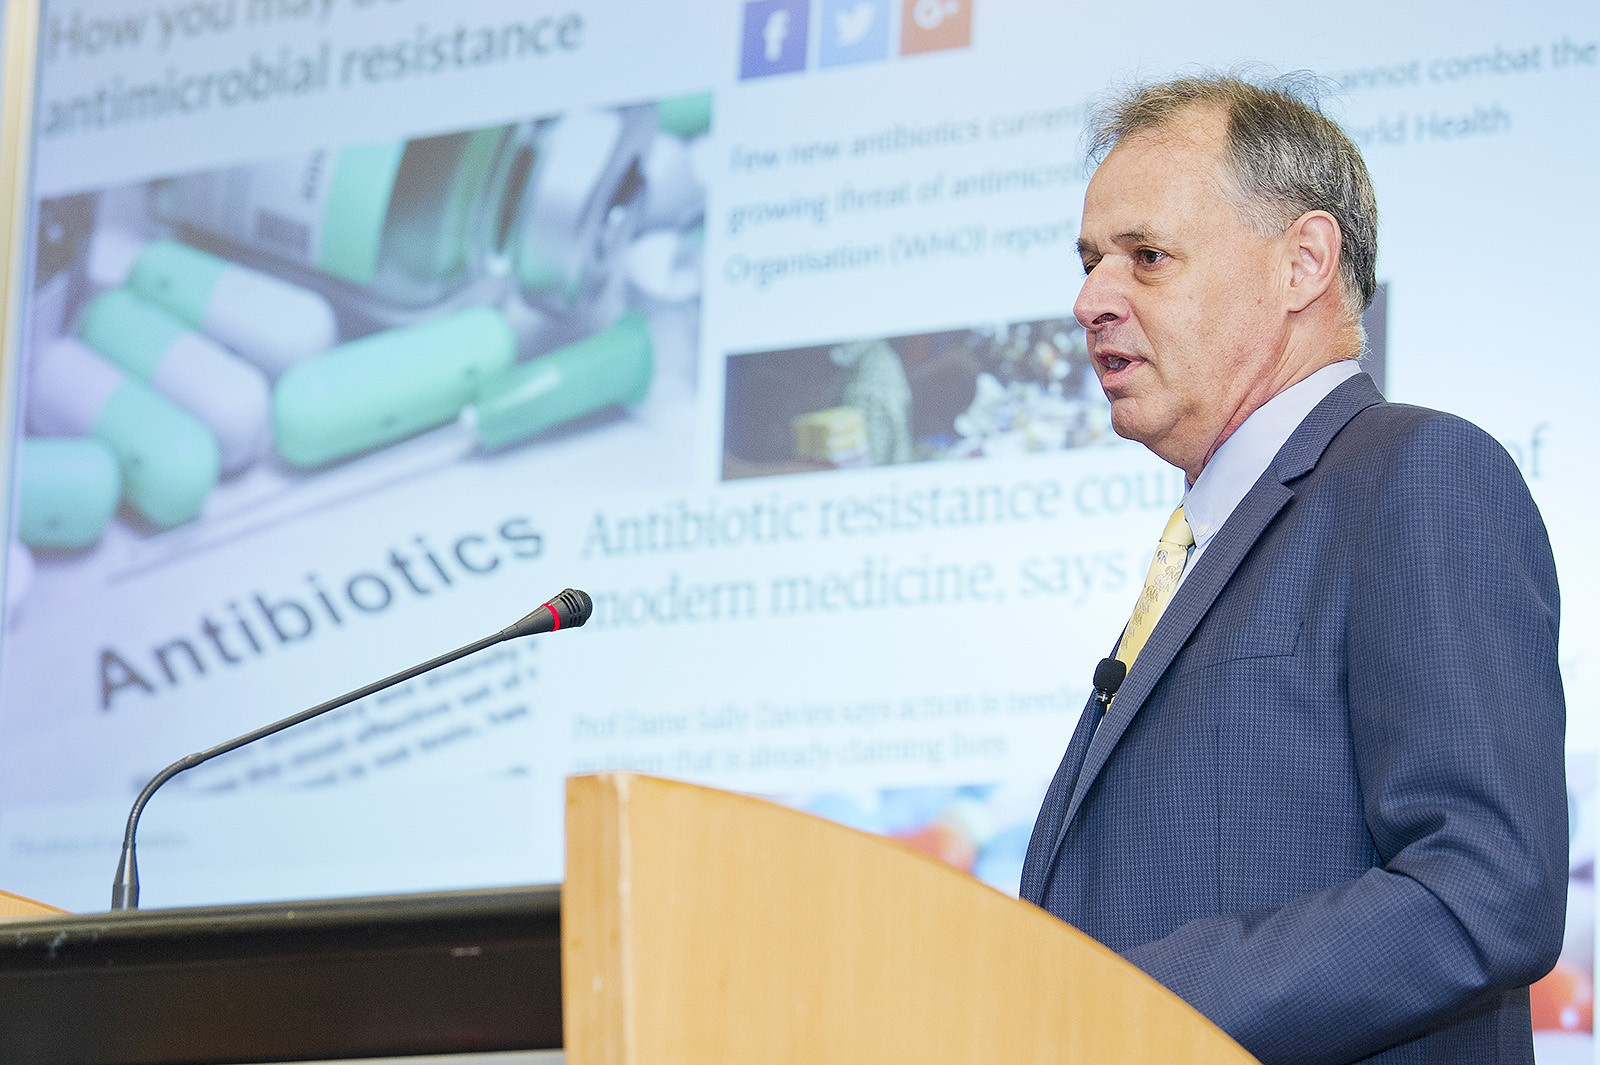 Antimicrobial resistance, or AMR, is a major threat to global health and the world economy, according to Professor Reichel at the President's Lecture Series: Excellence in Academia.